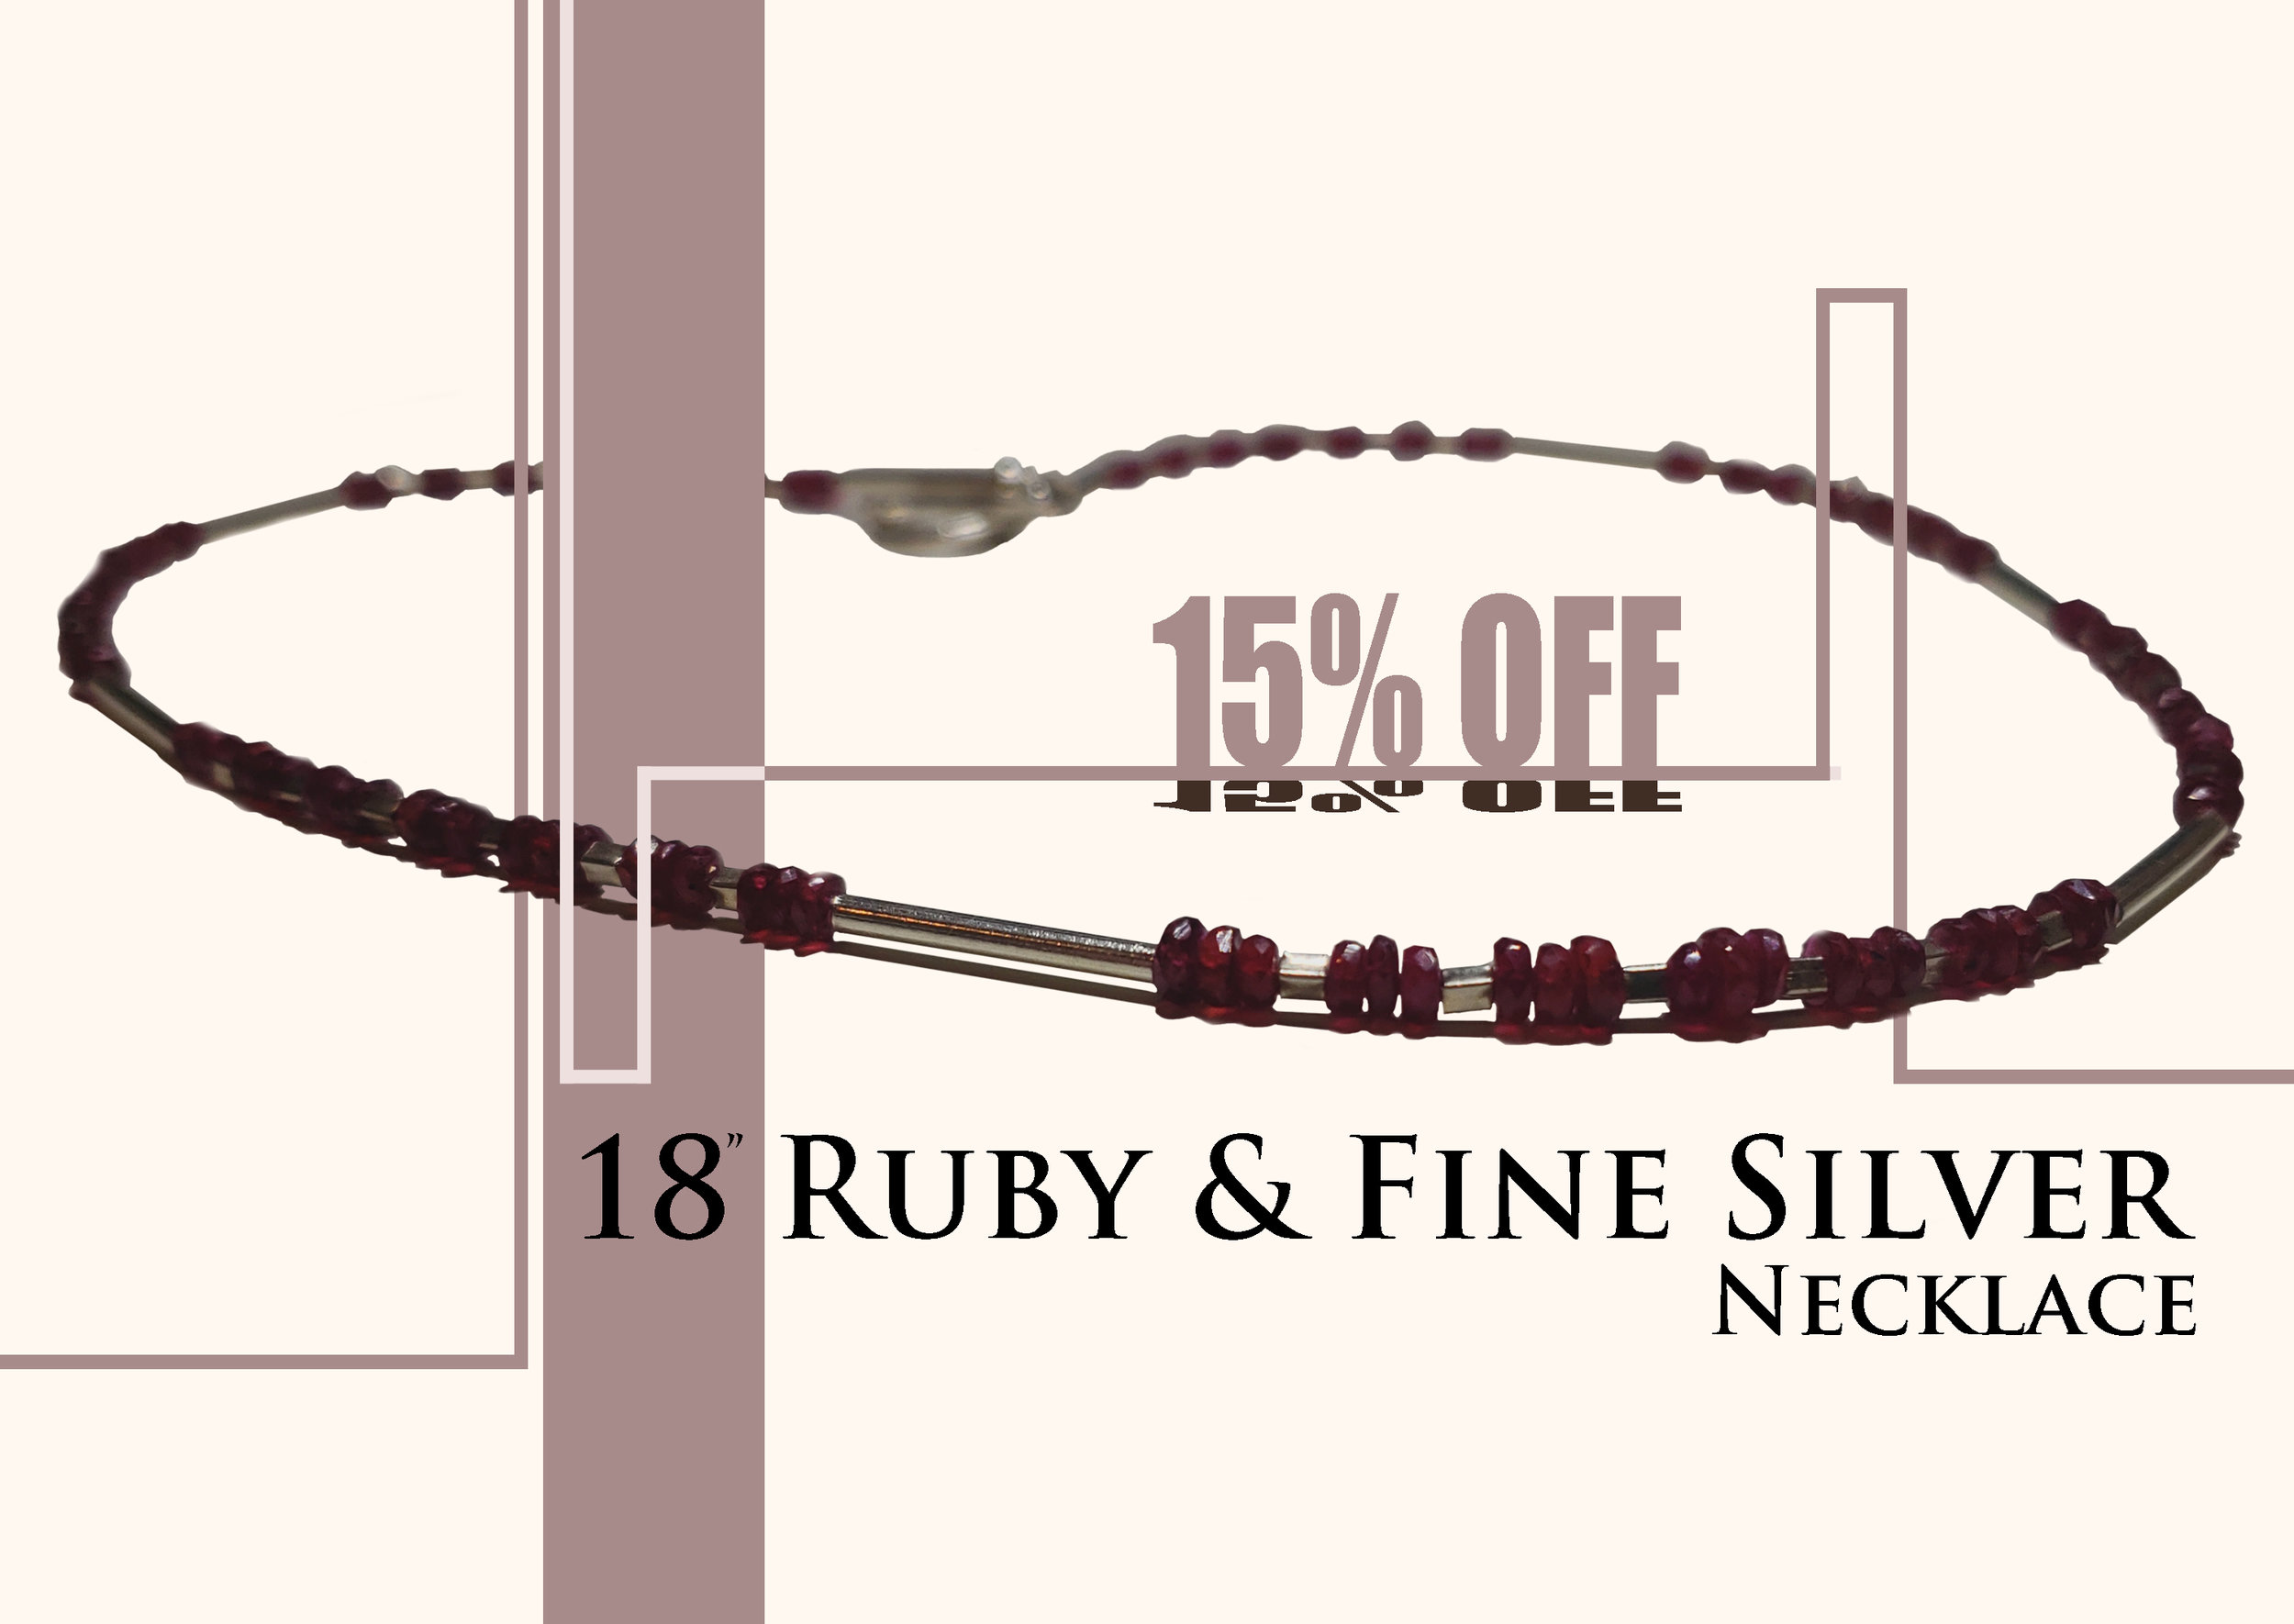 Ruby & Fine Silver Necklace.jpg